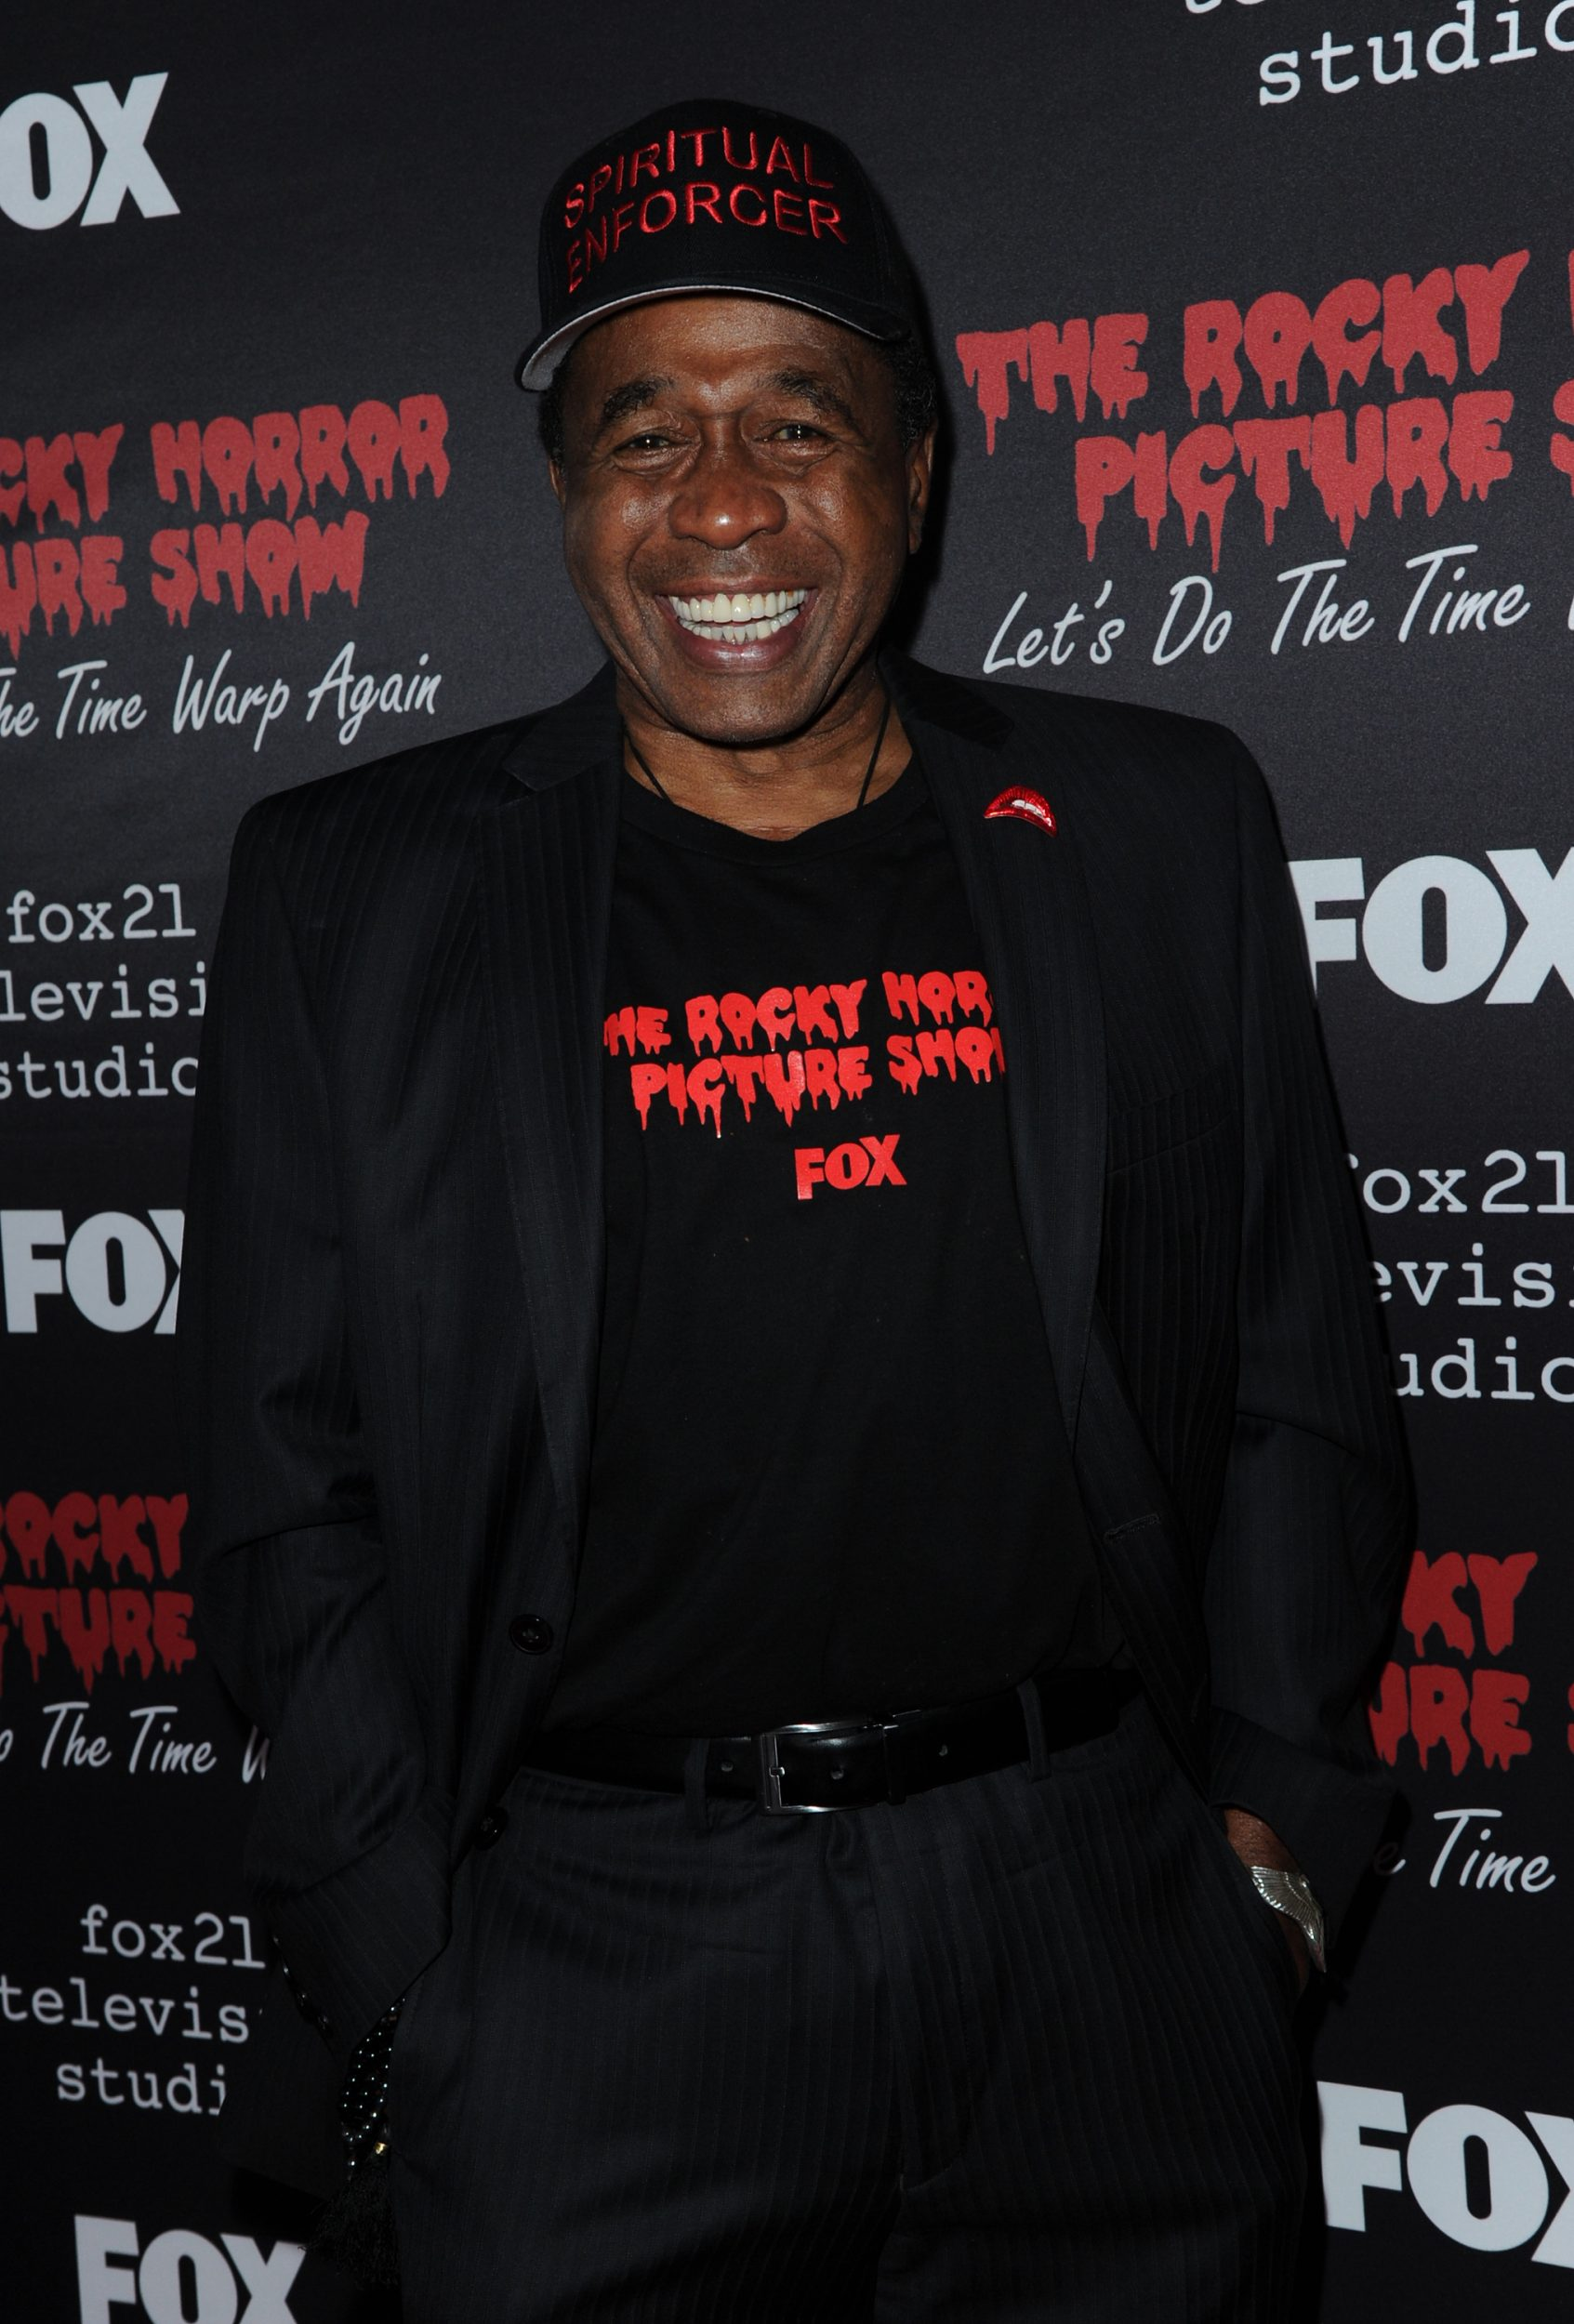 THE ROCKY HORROR PICTURE SHOW: Let's Do The Time Warp Again (and Transylvanians!): Cast member Ben vereen arrives at THE ROCKY HORROR PICTURE SHOW: Let's Do The Time Warp Again (and Transylvanians!) premiere party red carpet at The Roxy on Thursday, Oct. 13, in Los Angeles, CA. THE ROCKY HORROR PICTURE SHOW: Let's Do The Time Warp Again (And Transylvanians!) premieres Thursday, Oct. 20 (8:00-10:00 PM ET/PT) on FOX. © 2016 FOX BROADCASTING CR: Richard Shotwell/FOX